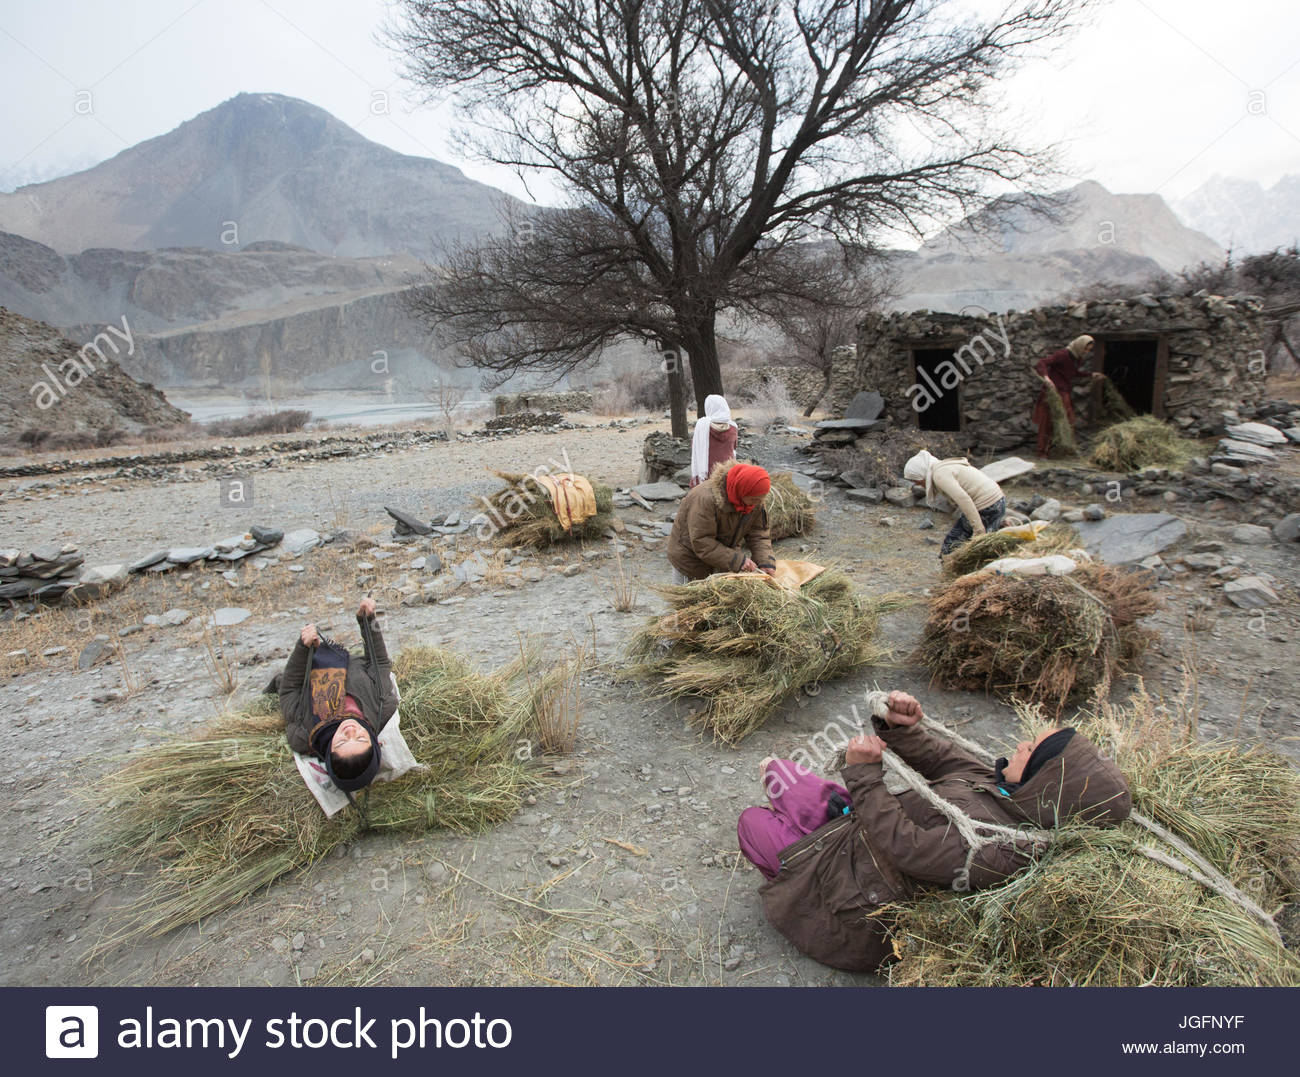 Women on their daily trek to get wood for cooking and heating and hay to feed their livestock, a two hour walk. - Stock Image